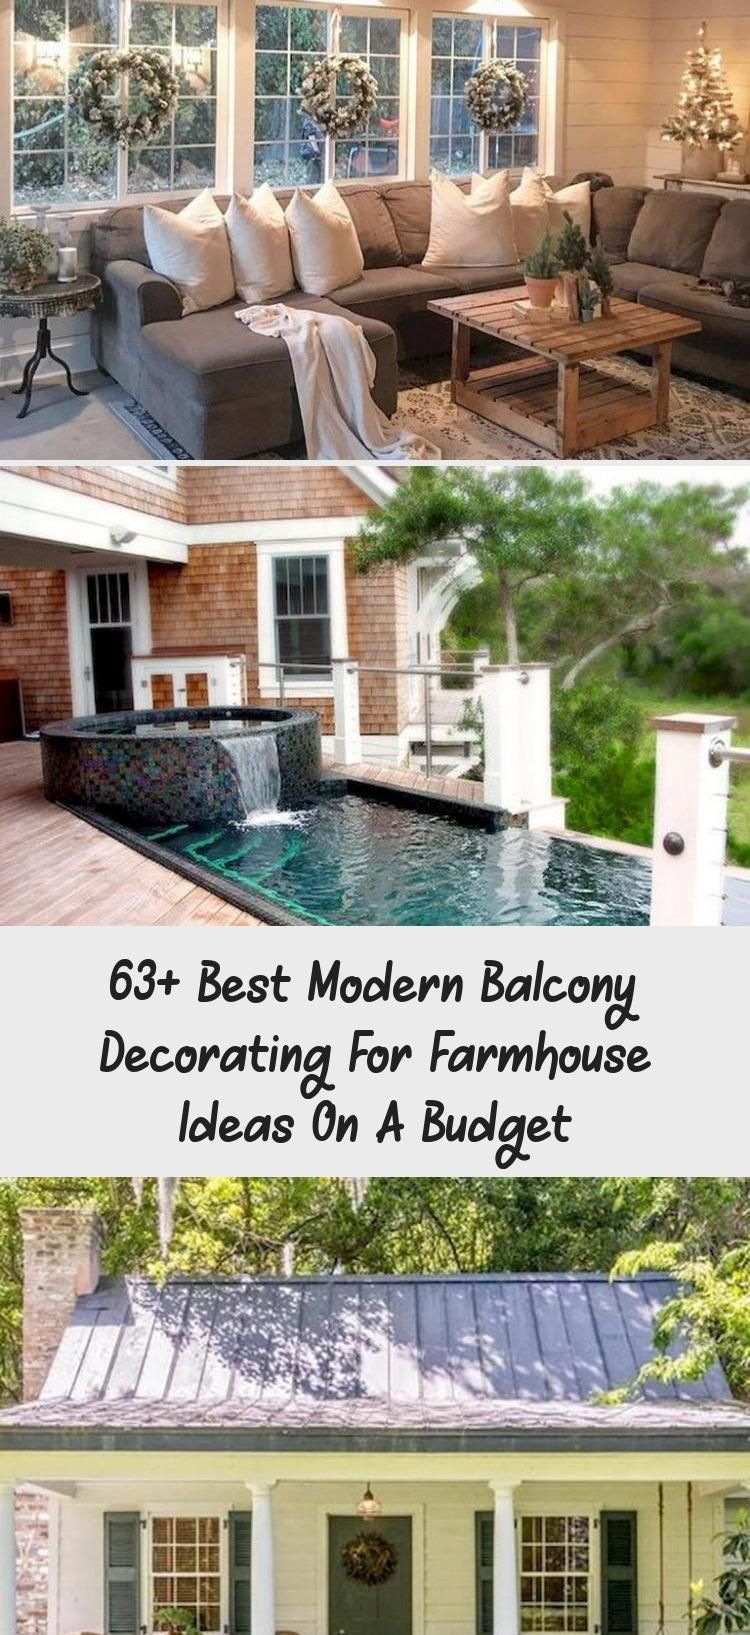 63+ Best Modern Balcony Decorating for Farmhouse Ideas on A Budget #farmhousesty… Balcony